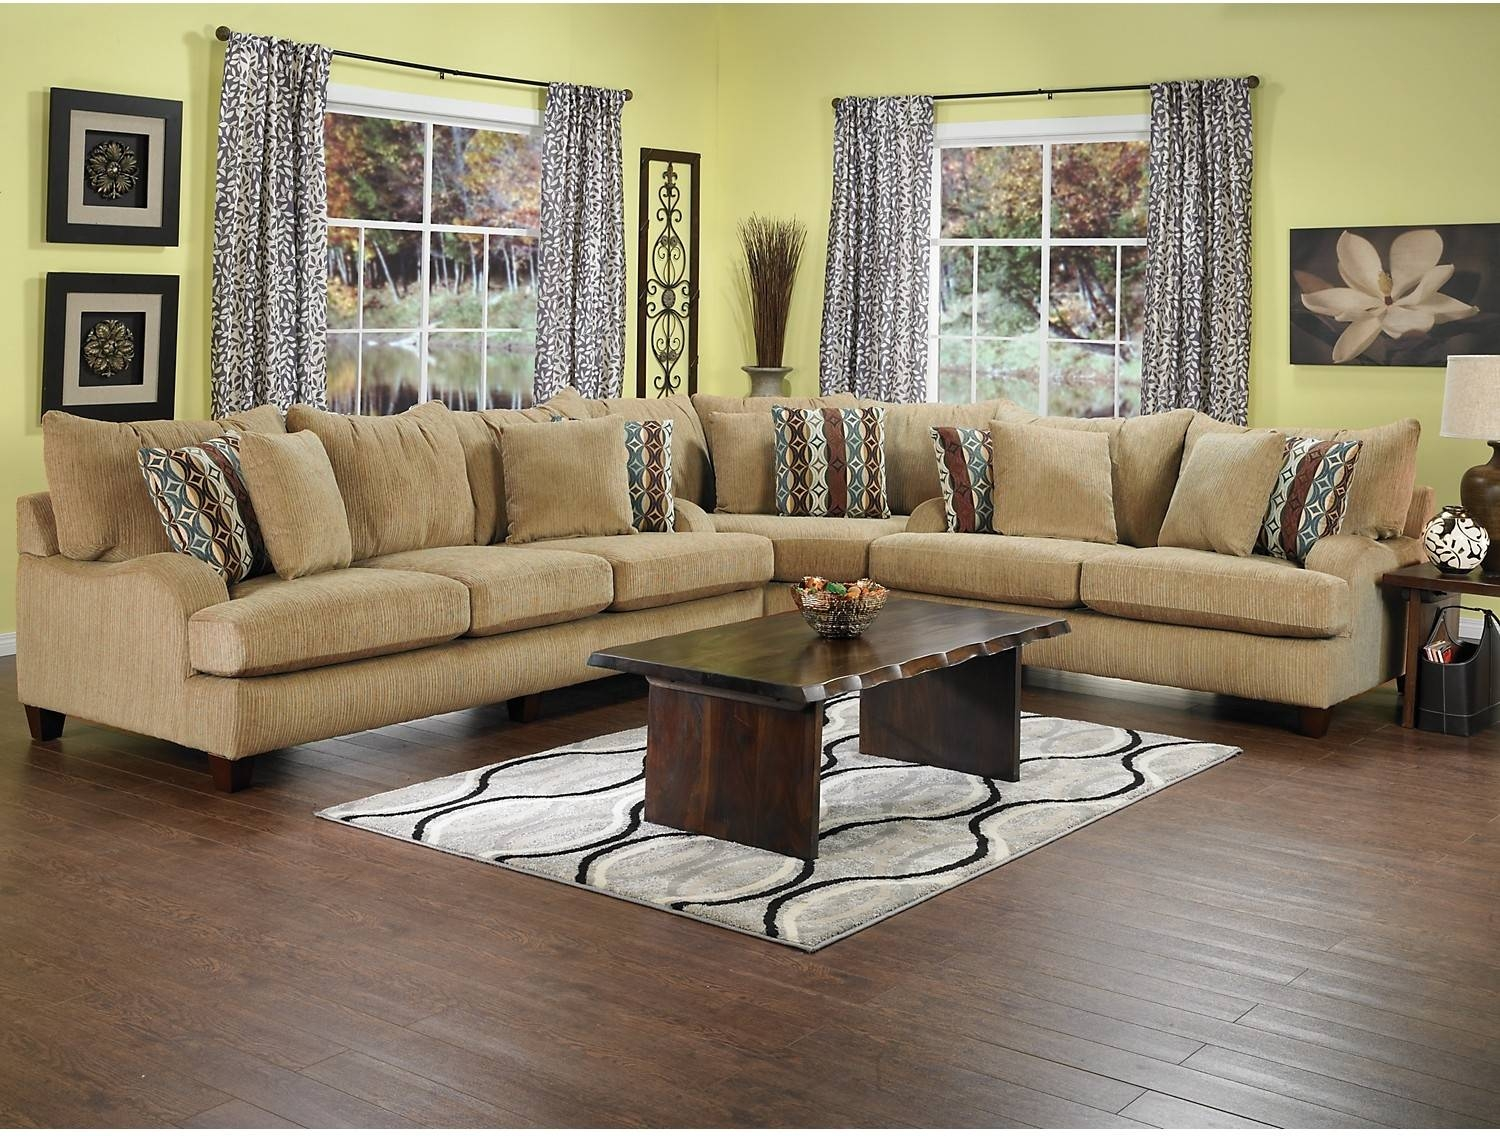 Cozy Chenille Sectional Sofas 13 For 10 Foot Sectional Sofa With intended for 10 Foot Sectional Sofa (Image 15 of 30)